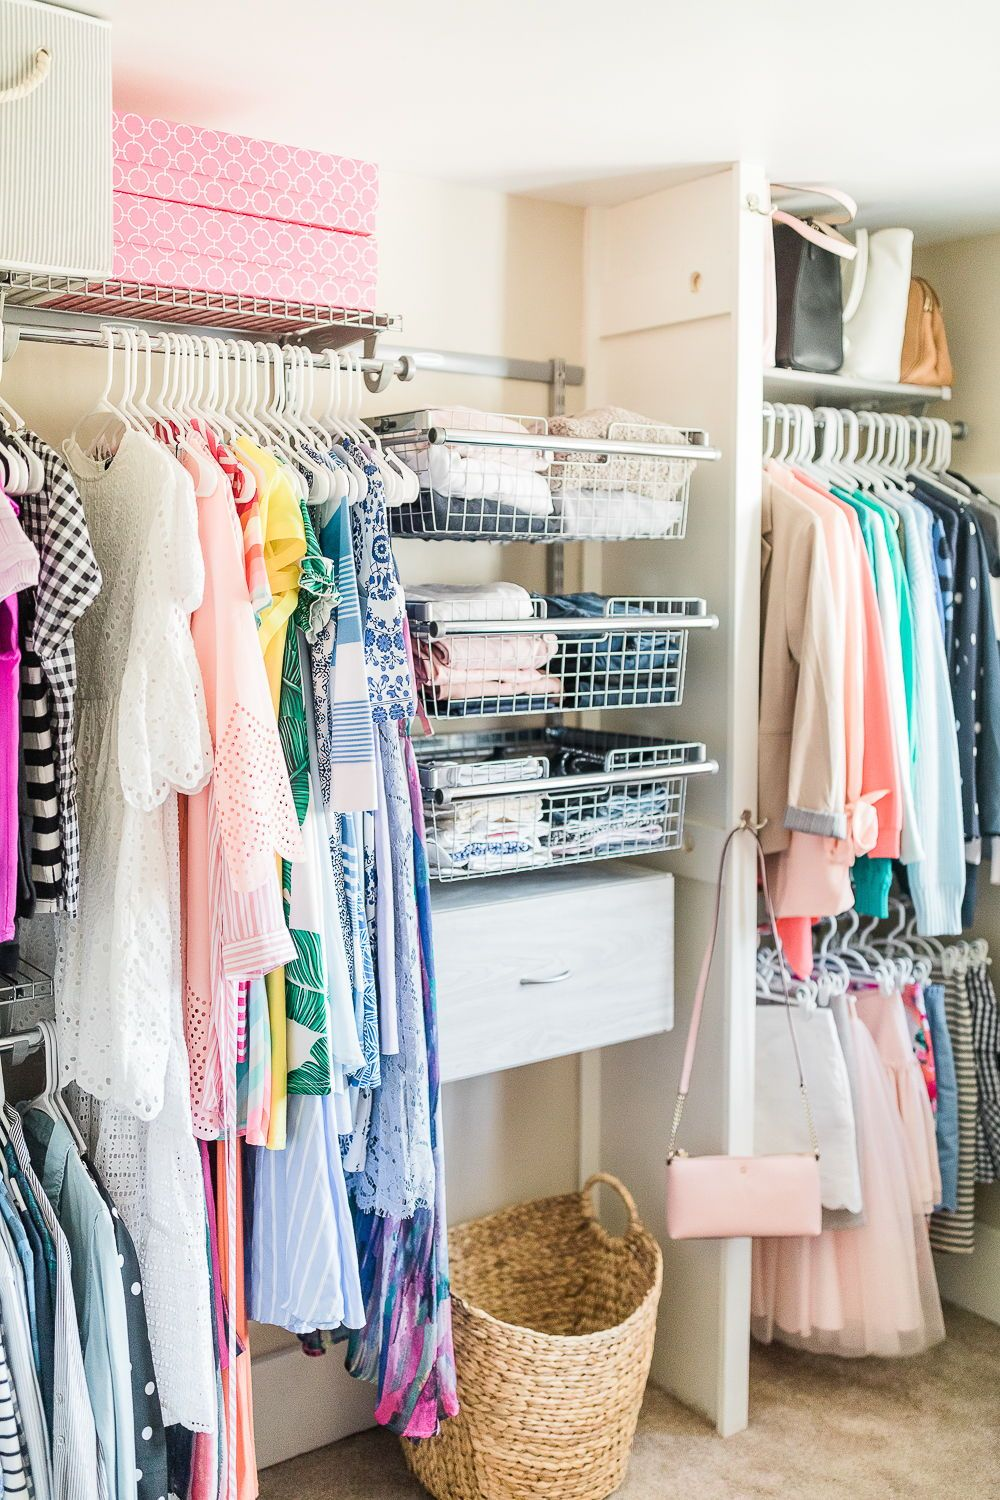 Need Some Affordable Custom Closet Ideas? Build Your Own Rubbermaid  FastTrack Closet Organization System At